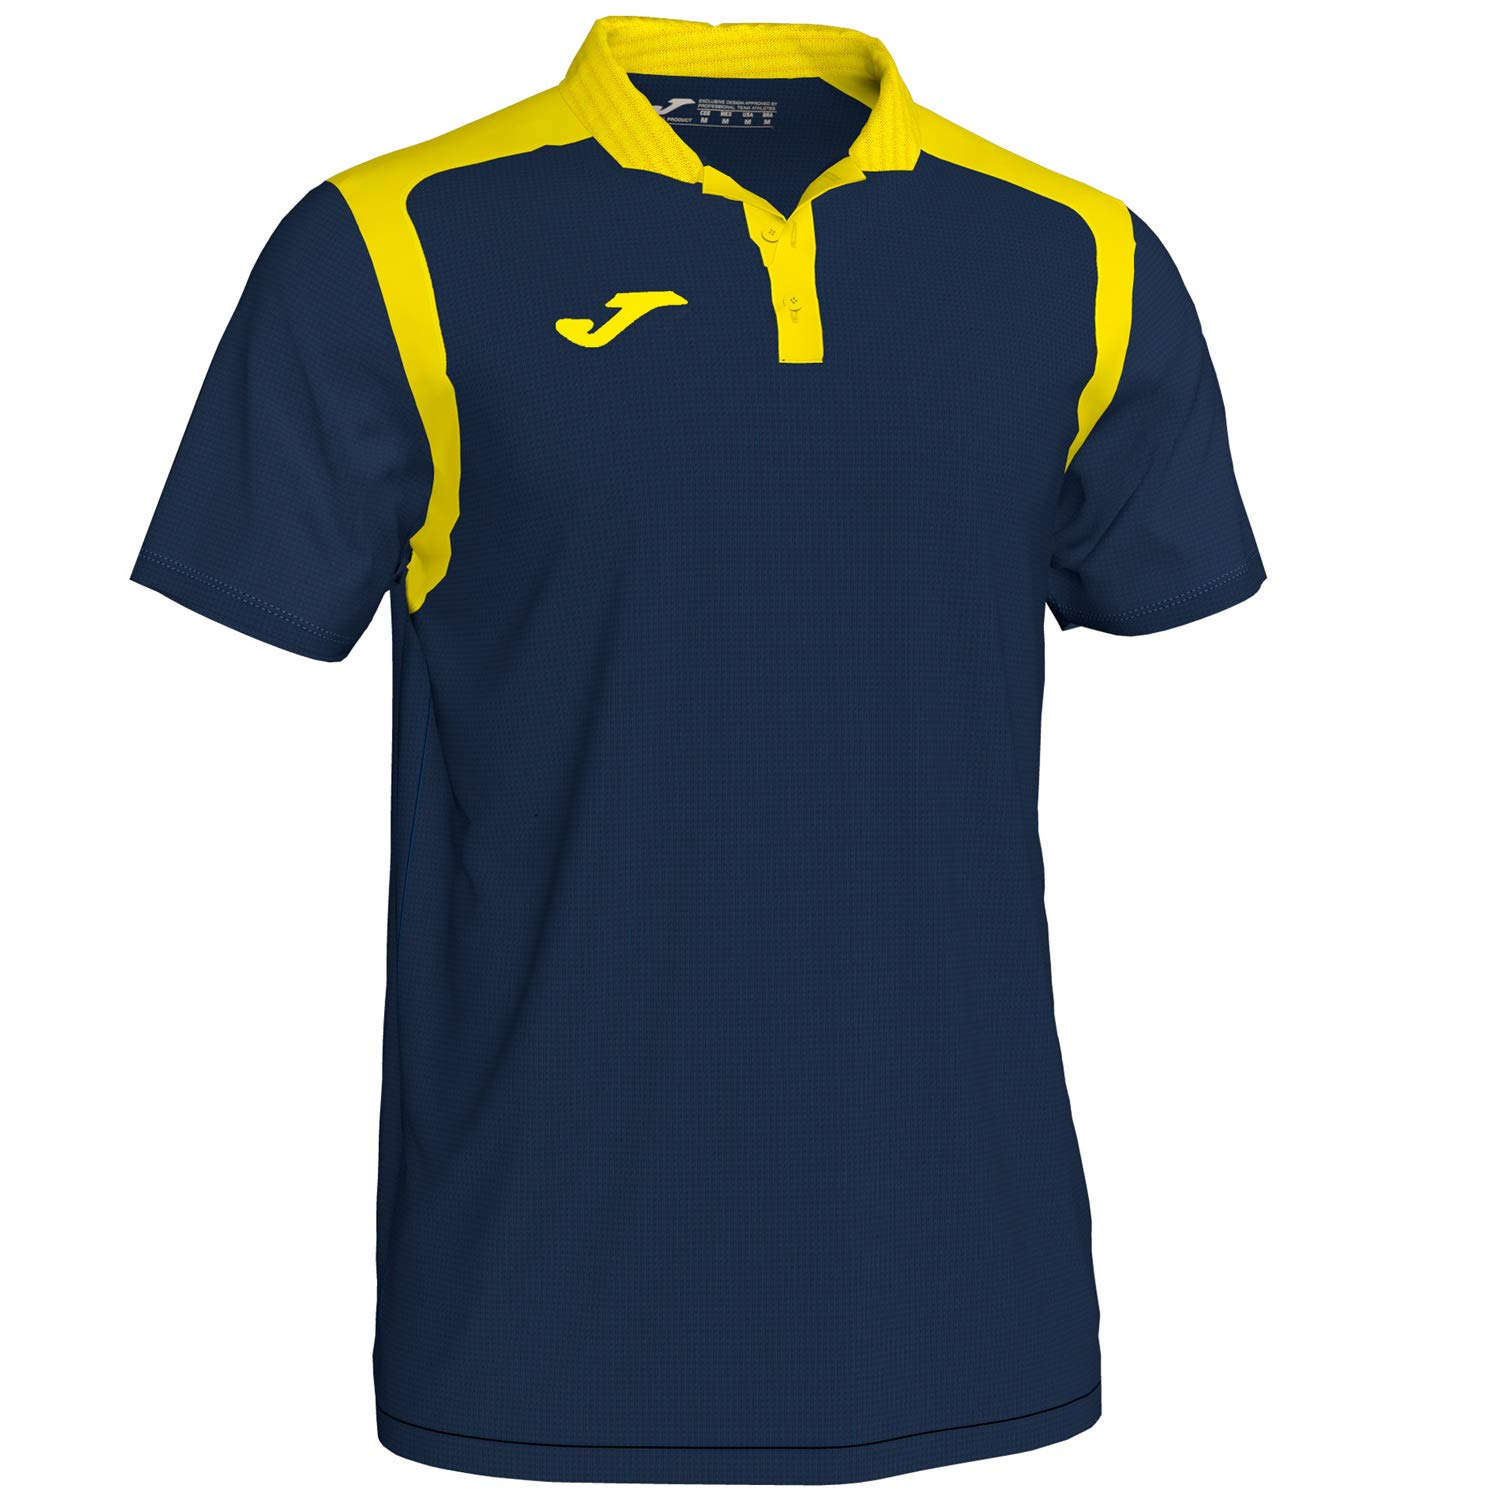 KiarenzaFD Joma Polo M/C Champion V 101265 Navy-Amarillo Fashion ...